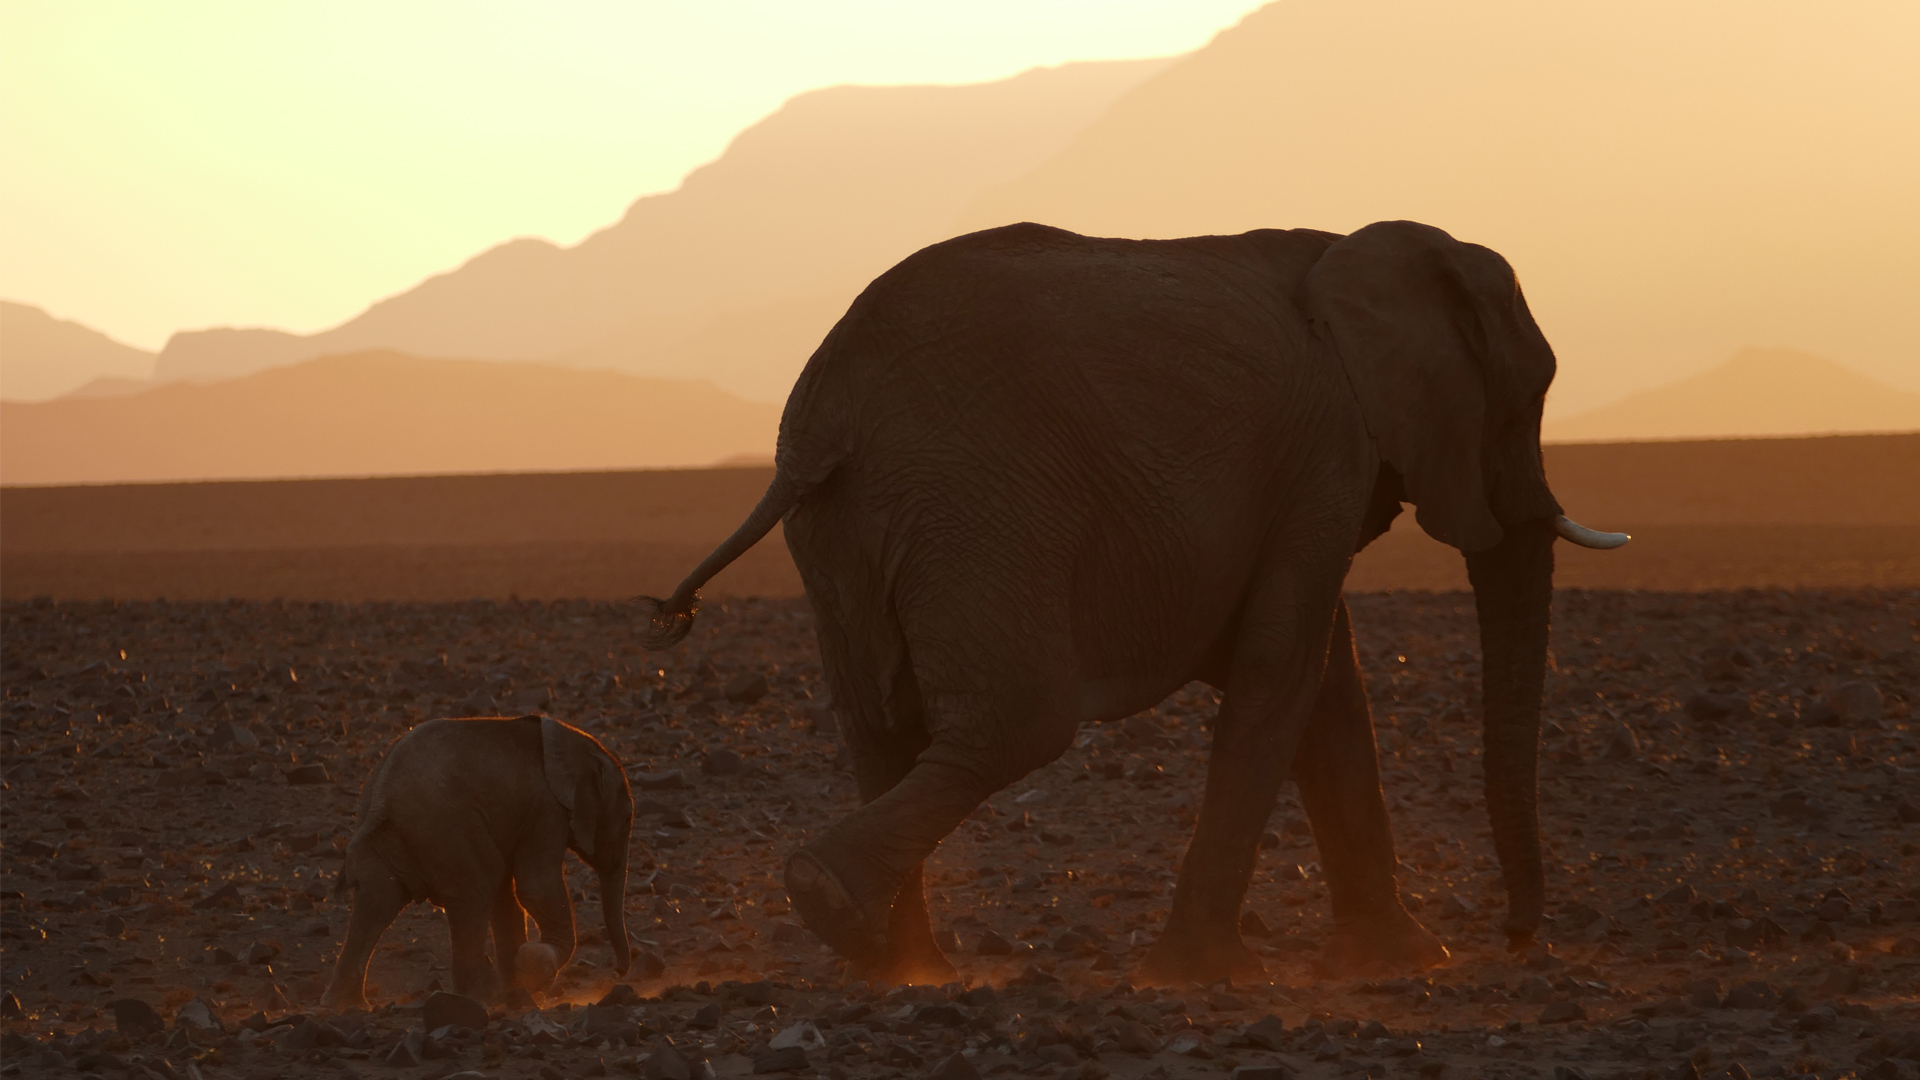 namibia regions damaraland elephants